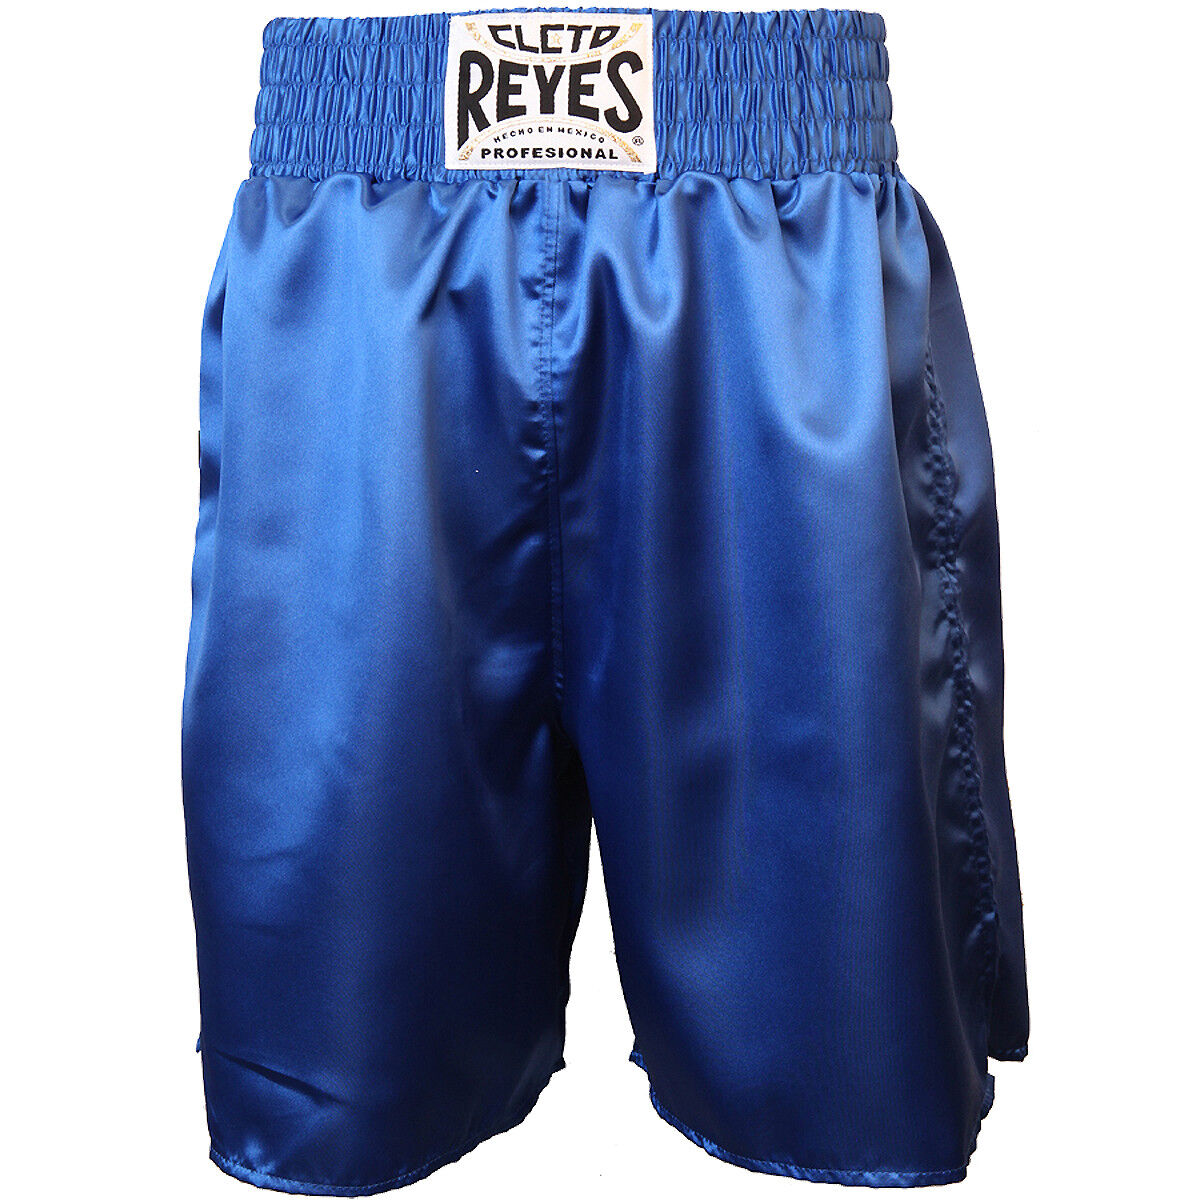 Cleto Reyes Satin Classic Boxing Trunks - bluee